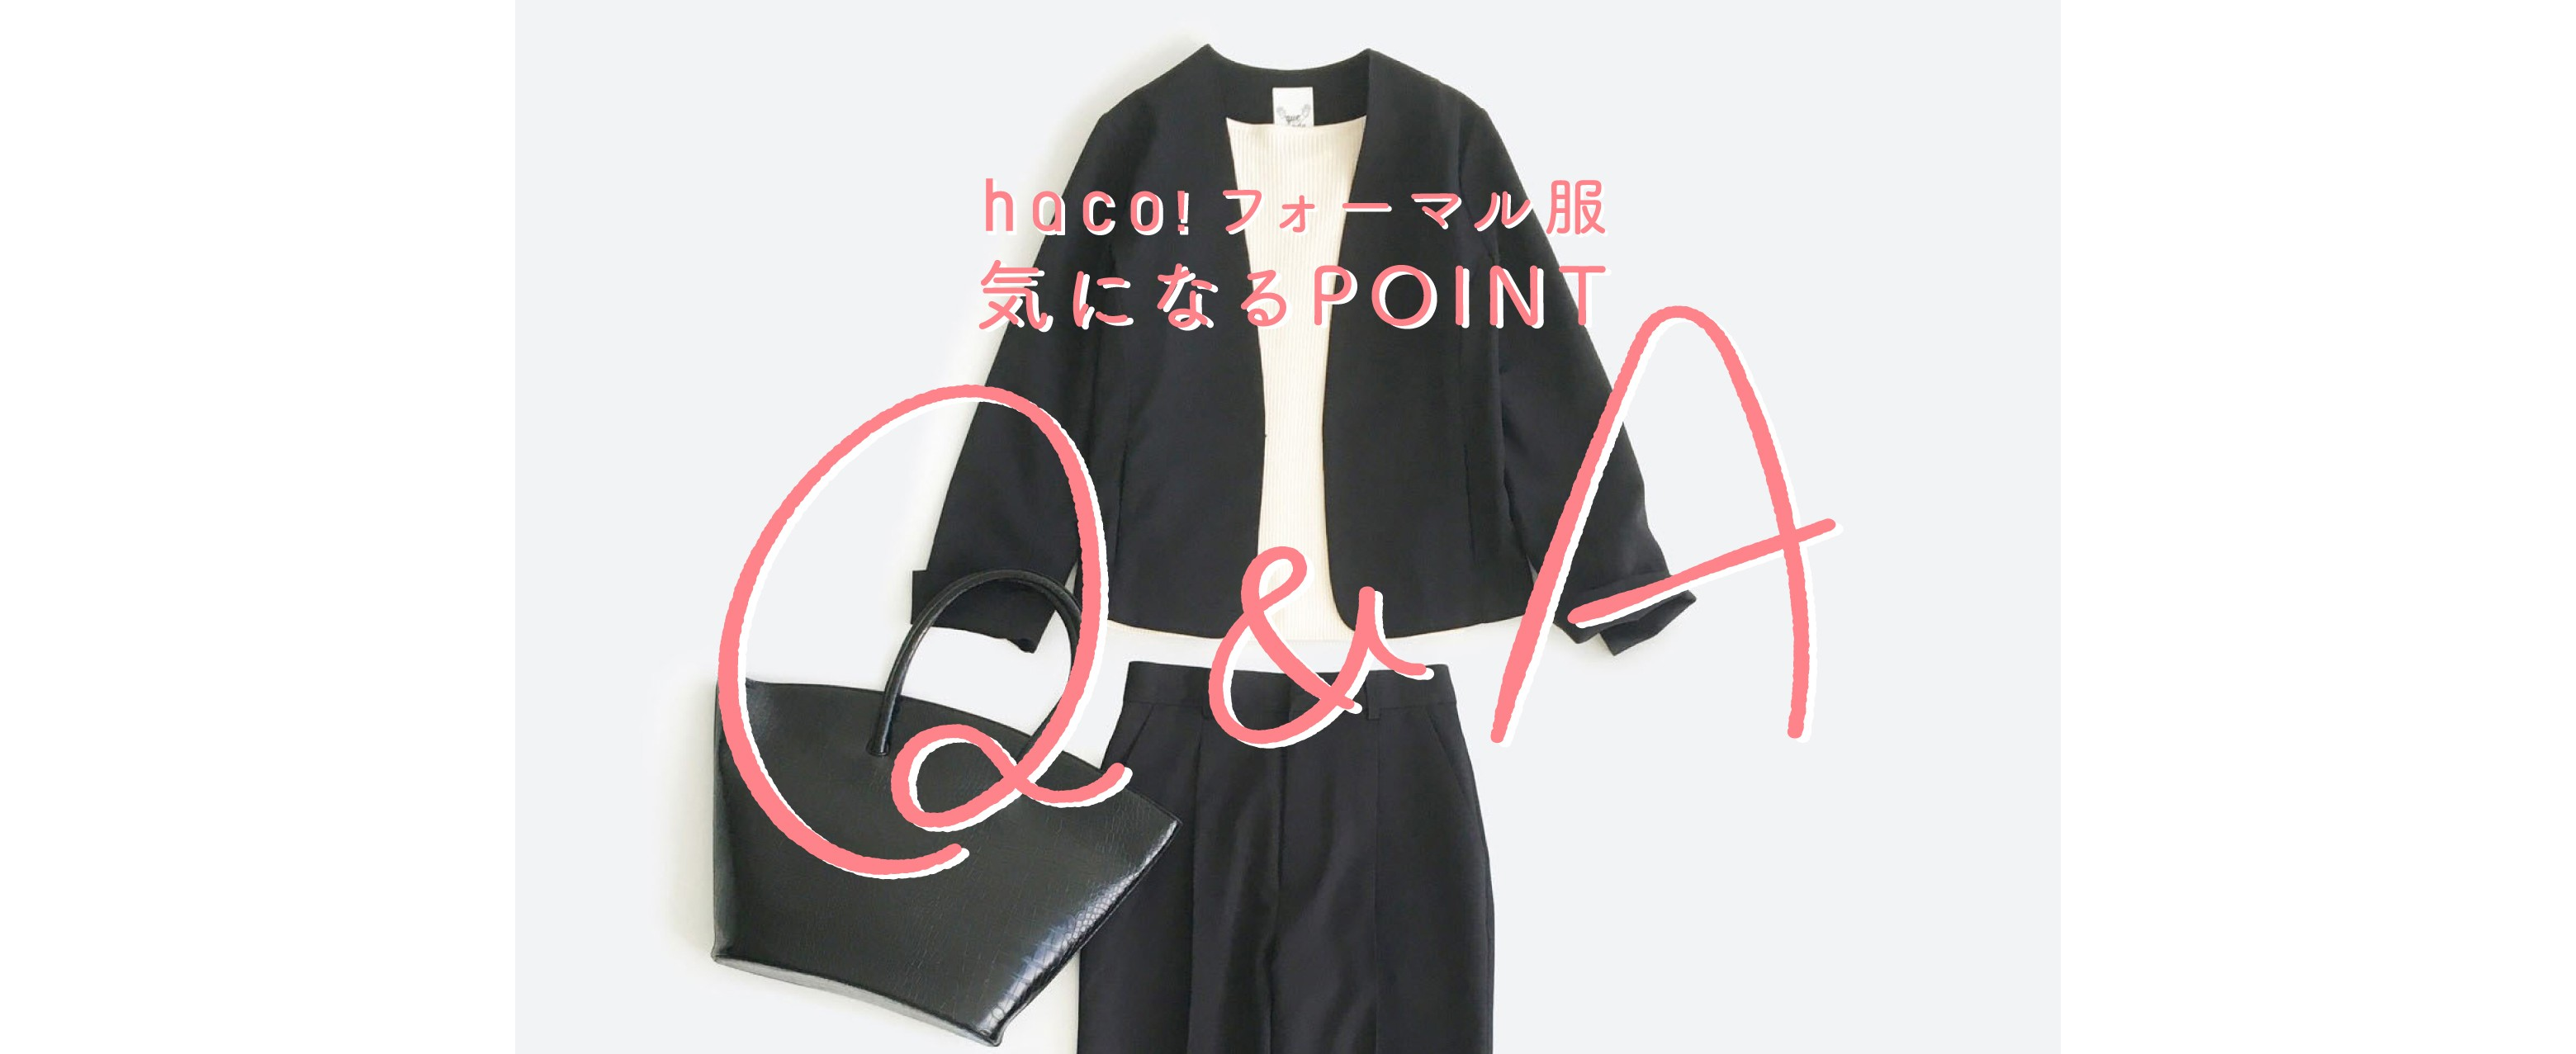 haco!フォーマル服 Q&A